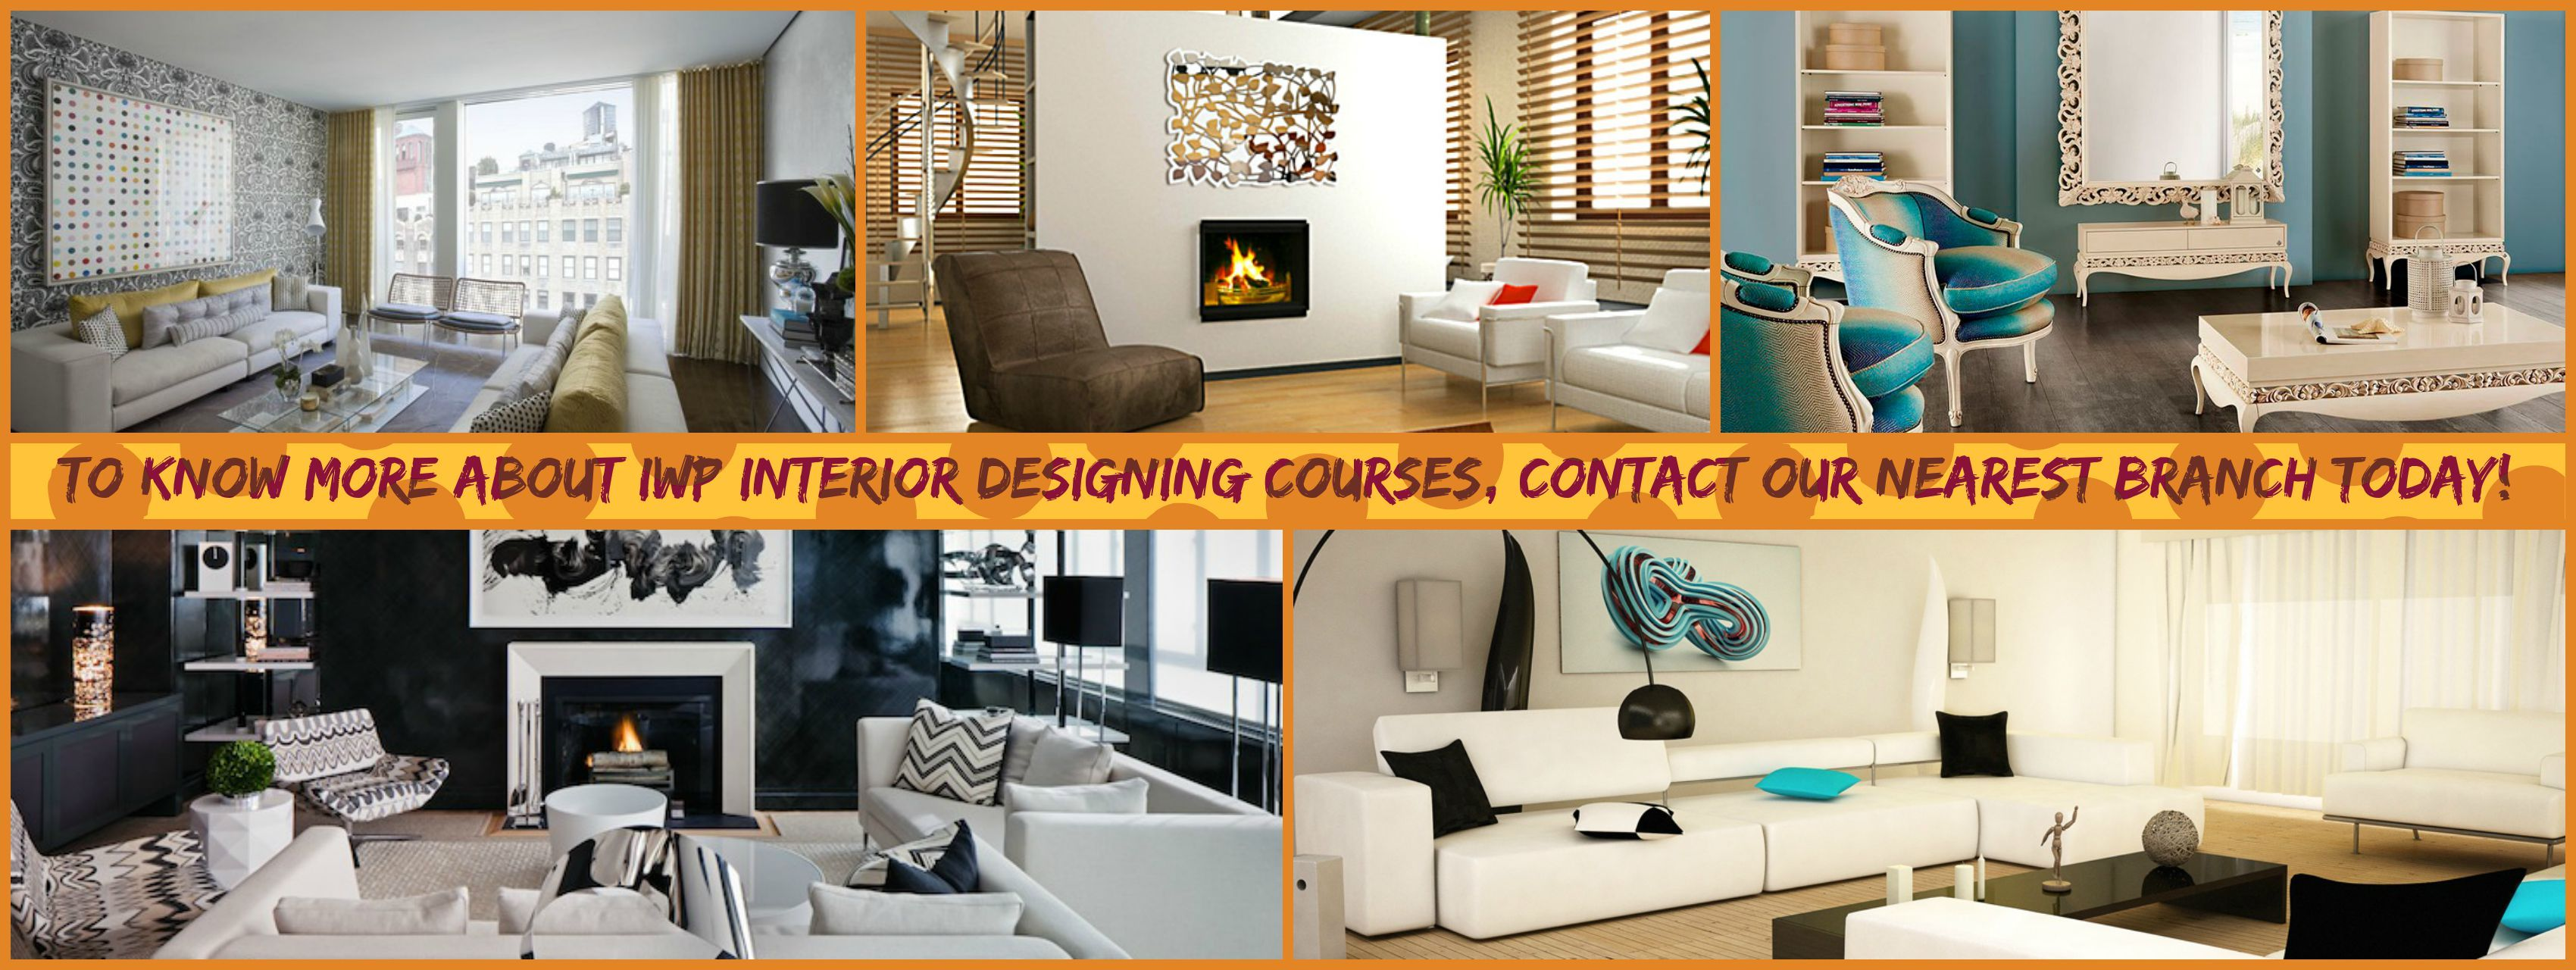 For Interiordesign Decoration Course Details Contact Our Nearest Branch Today Delhi Gurgaon Ghaziabad Luck With Images Interior Design Interior Best Interior